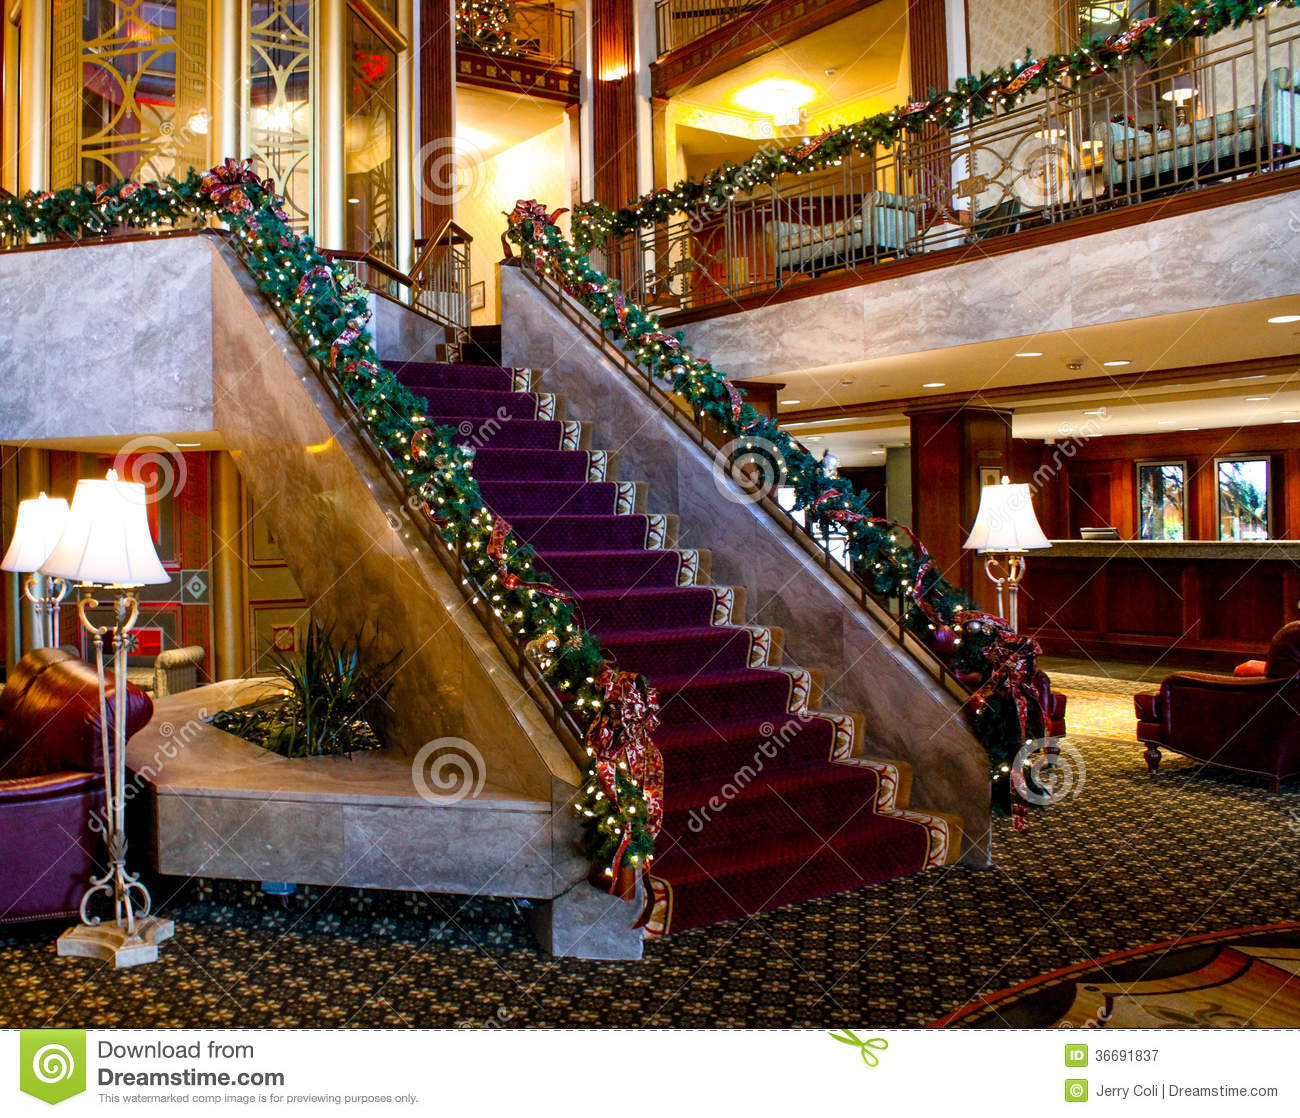 Christmas Time At The Biltmore Hotel, Providence, RI